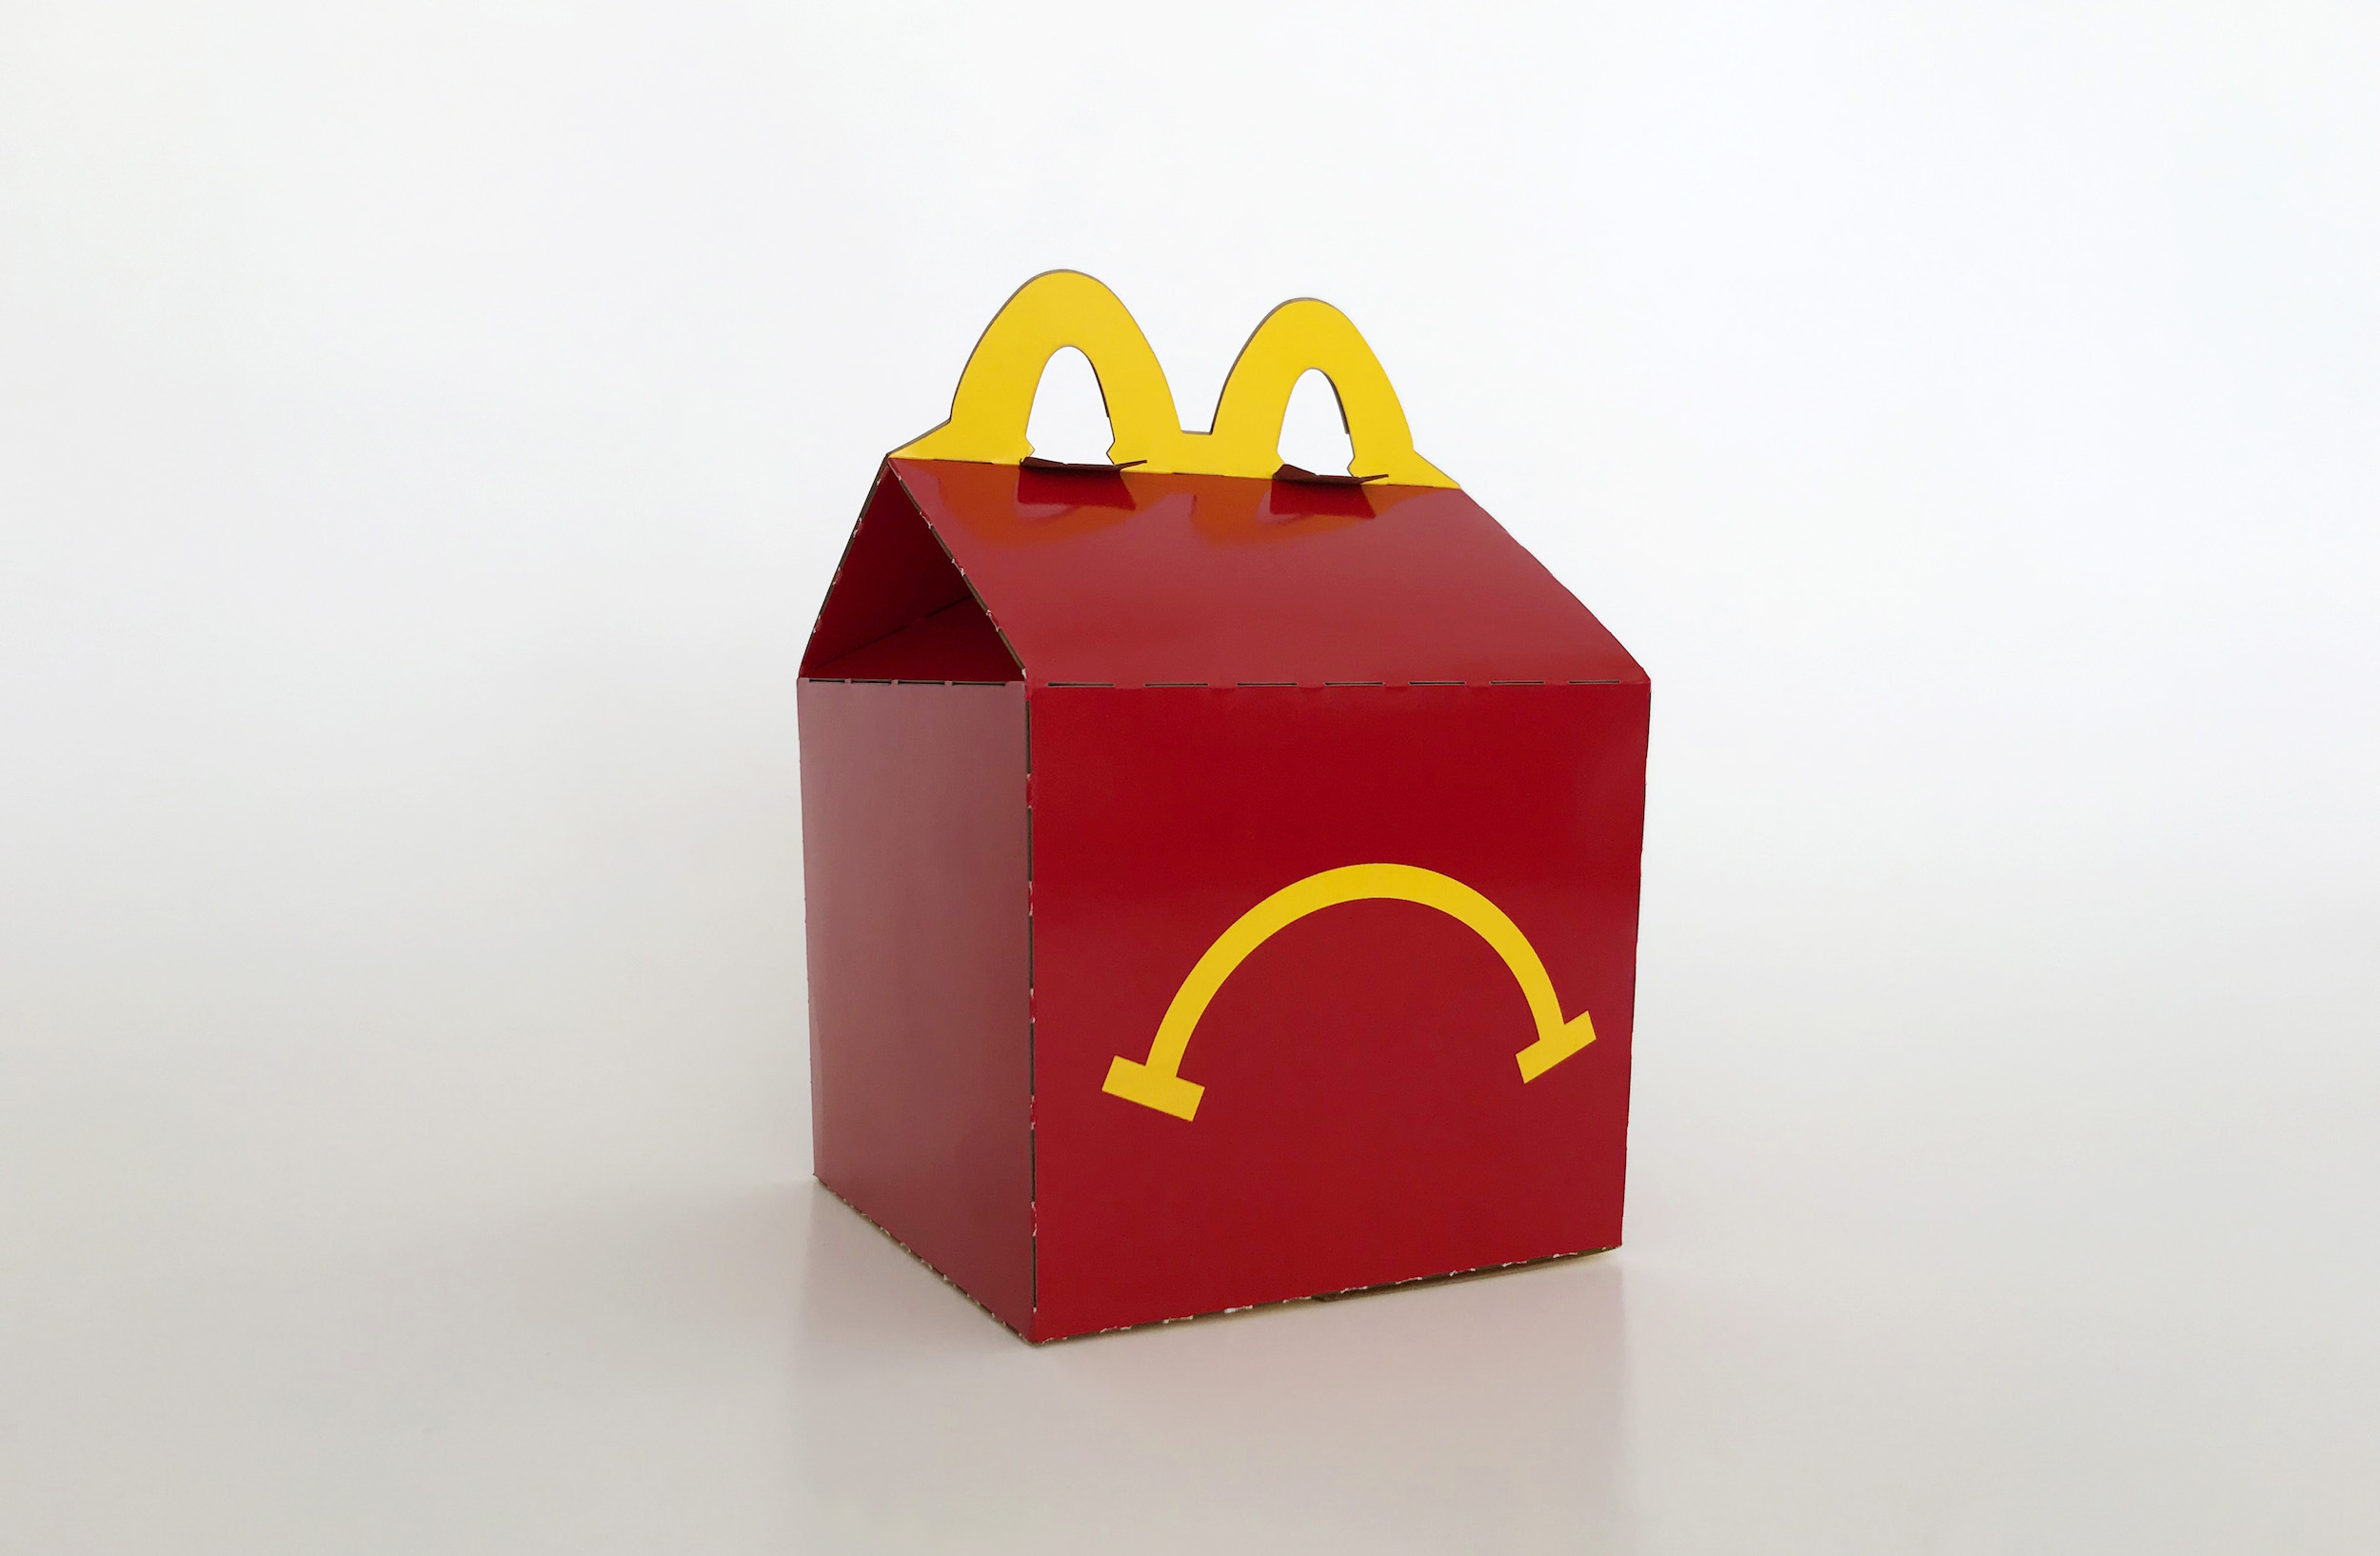 Unhappy Meal, Image courtesy of the artist.